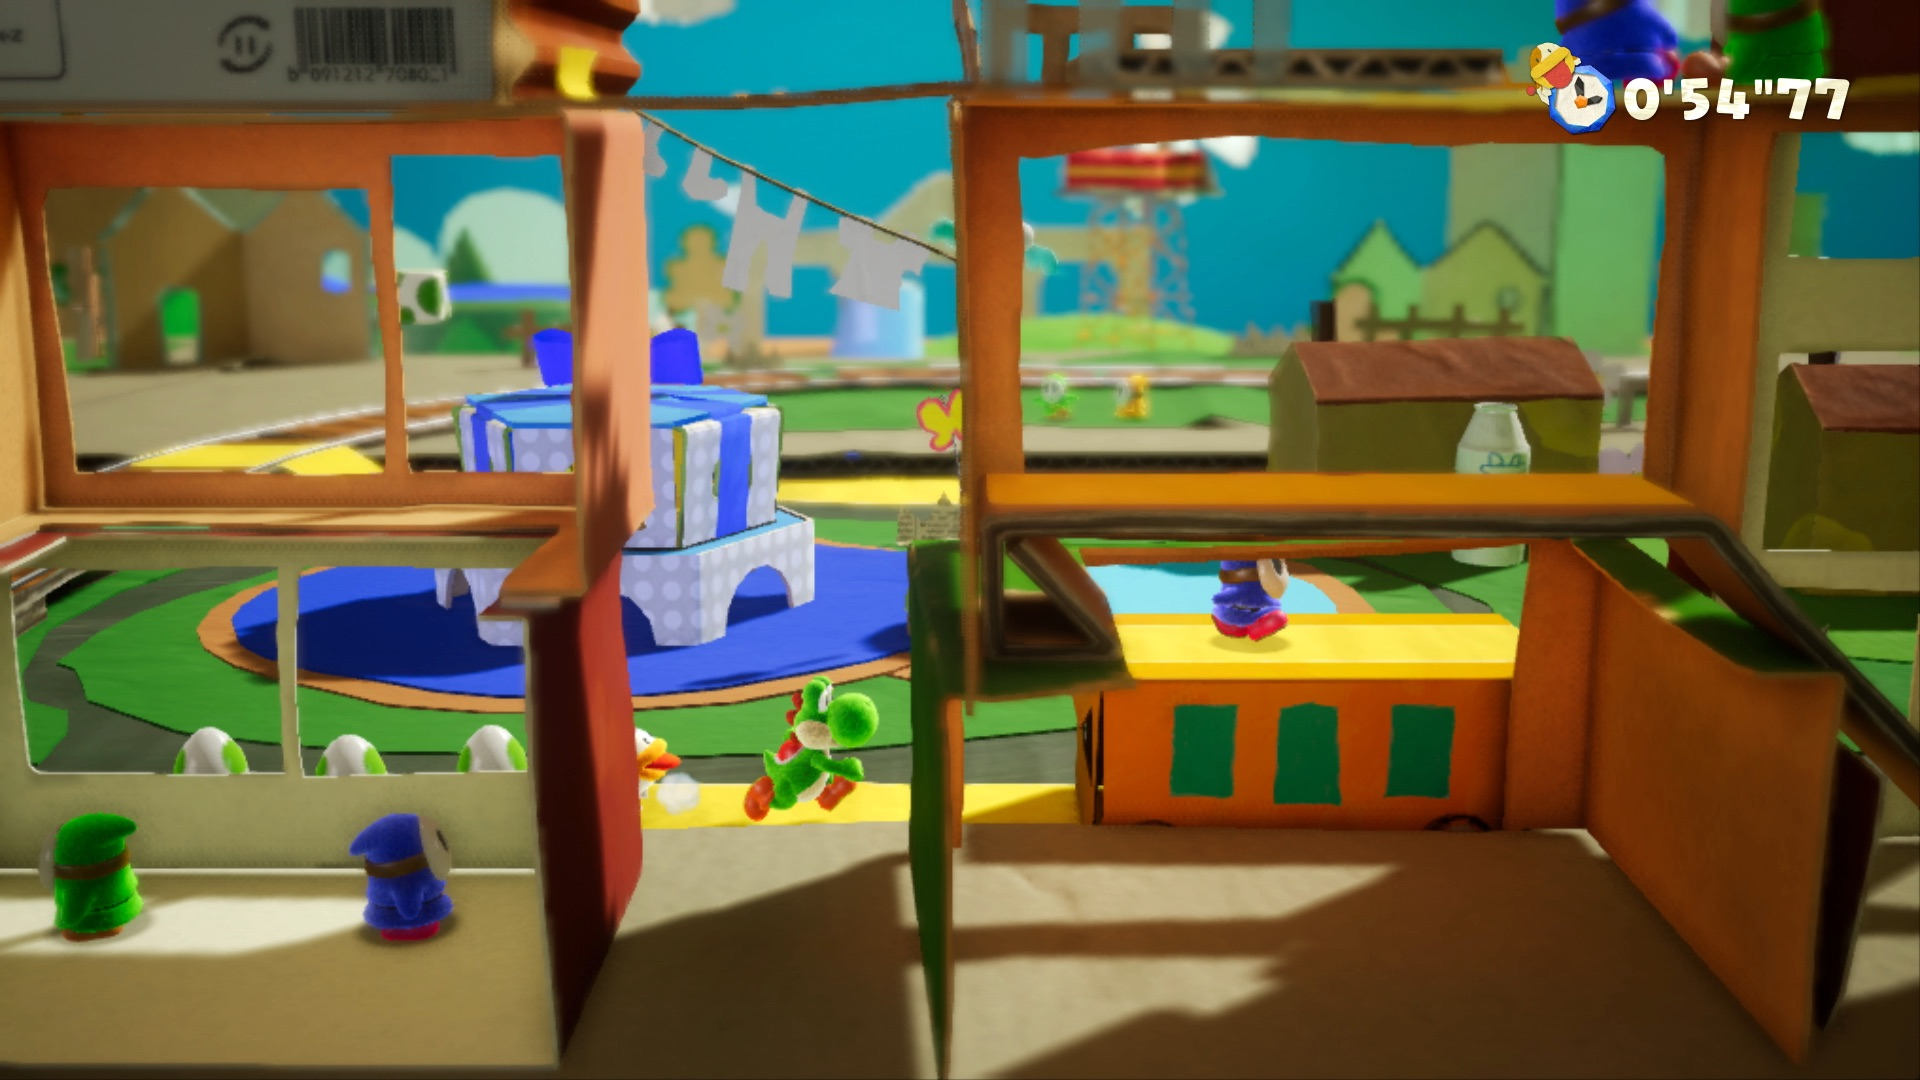 Yoshi's Crafted World is classic gaming joy, Nintendo-style Switch YoshisCraftedWorld 090618 PressKit SCRN 07